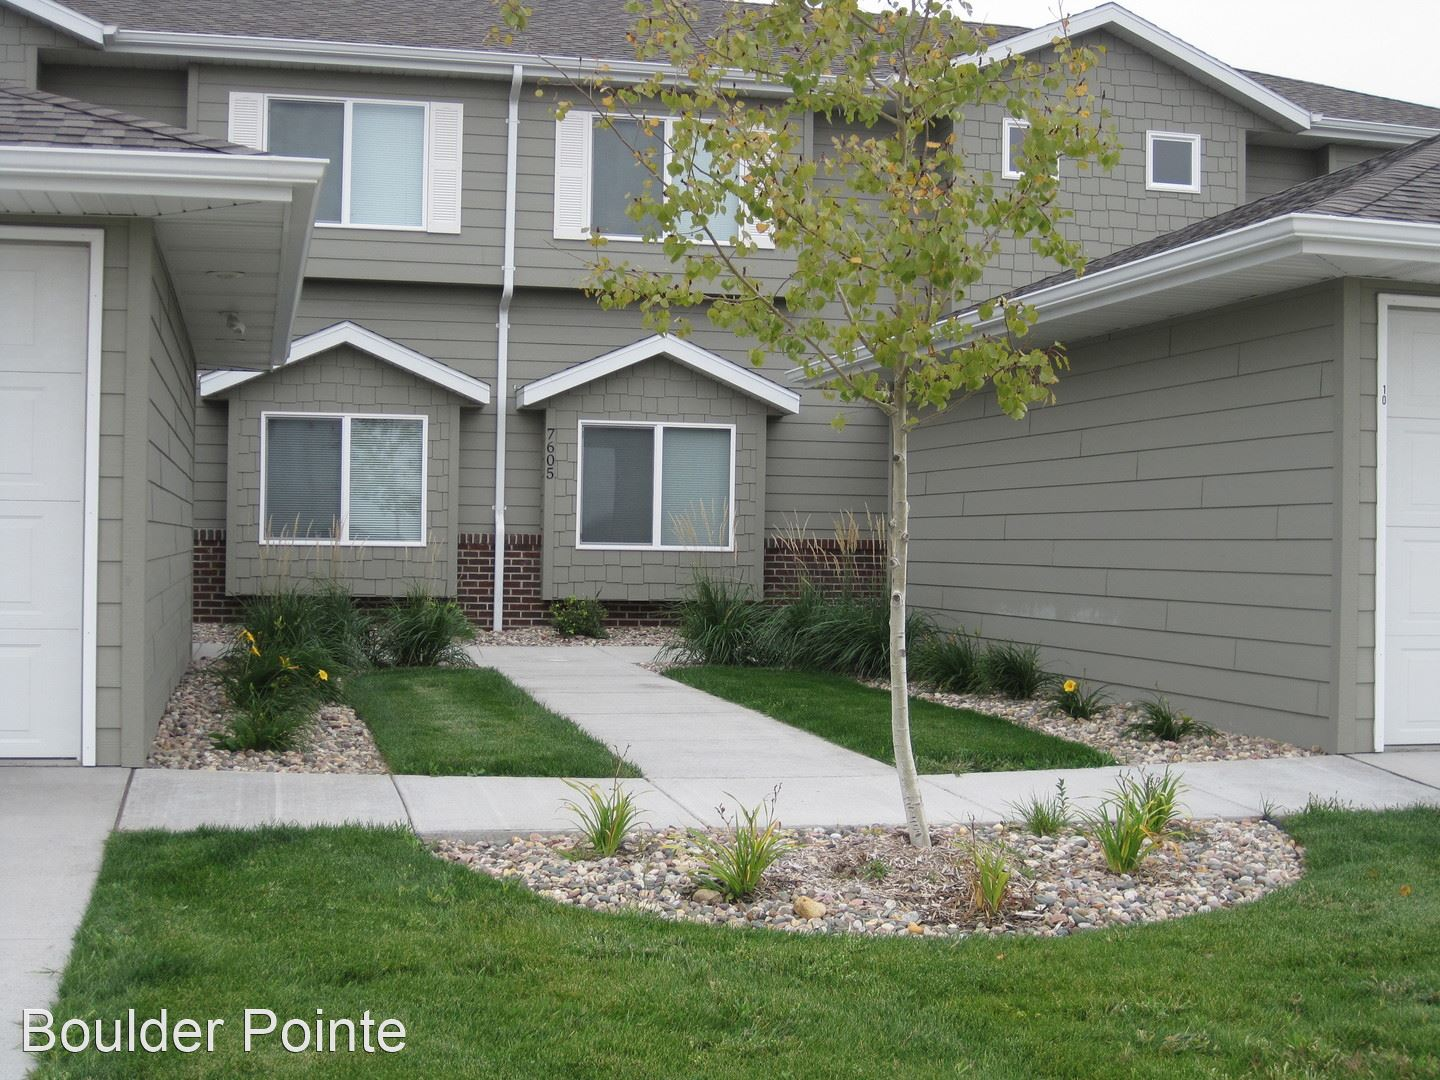 Boulder Pointe Town Homes 7601 W. Snapdragon Street